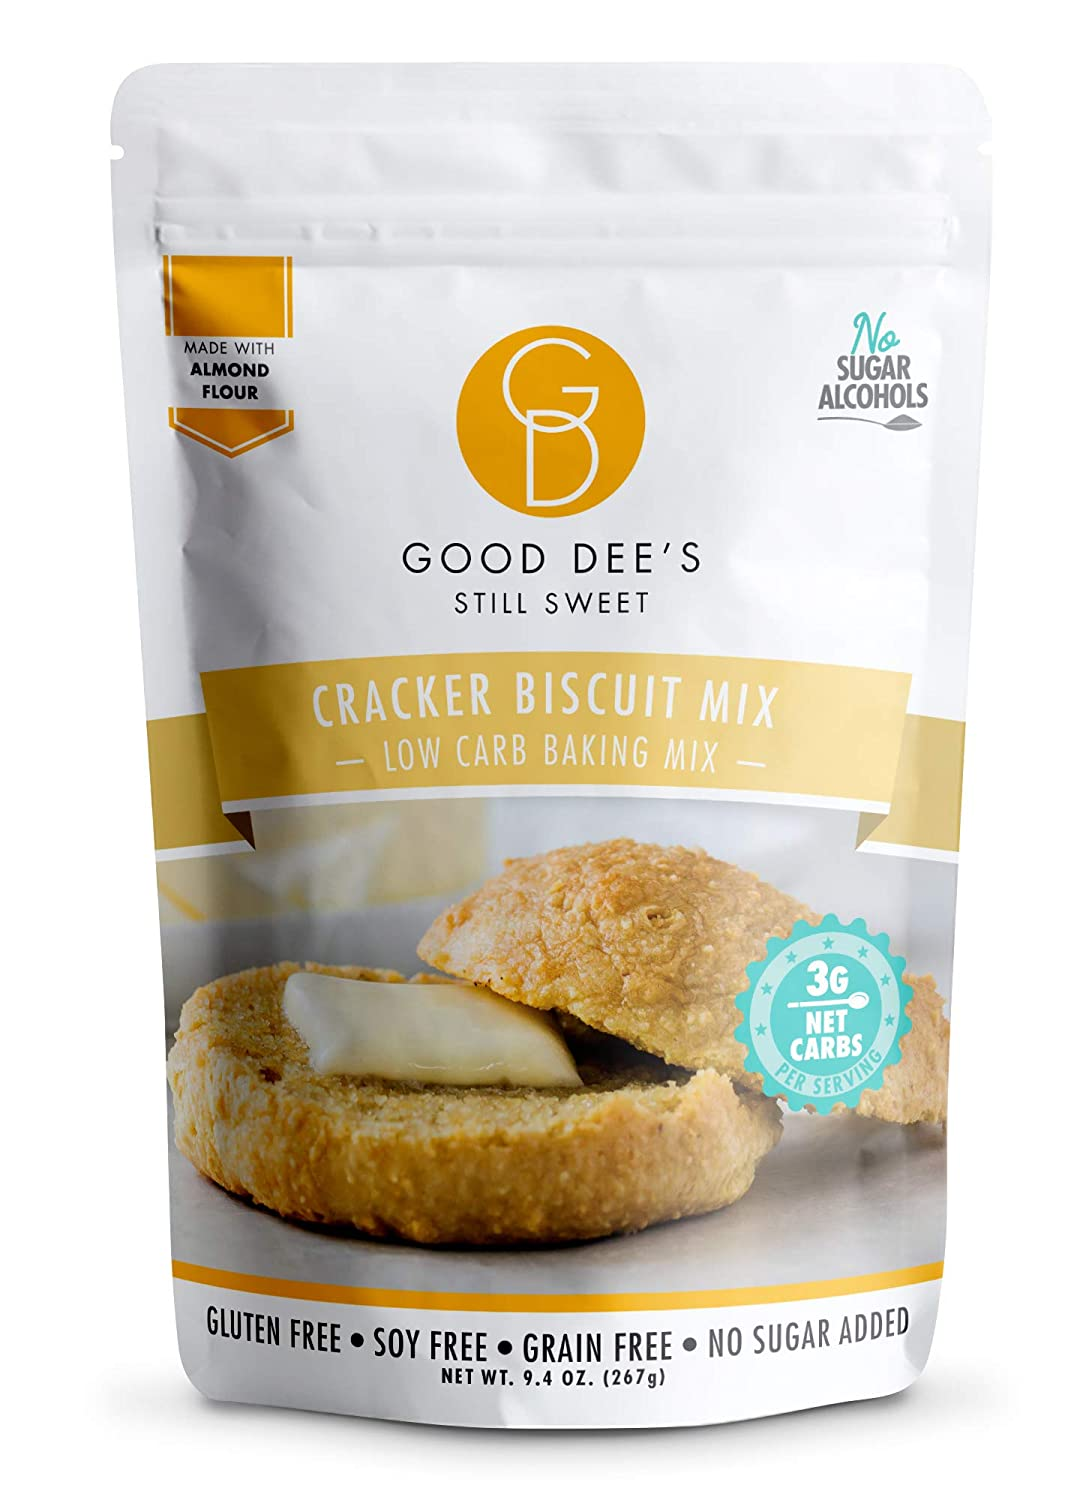 Good Dee's Cracker Biscuit Mix - Low Carb Keto Baking Mix (3g Net Carbs, 10 Servings) | Sugar Alcohol-Free, Gluten-Free, Grain-Free, Soy-Free & IMO-Free | Diabetic, Atkins & WW Friendly